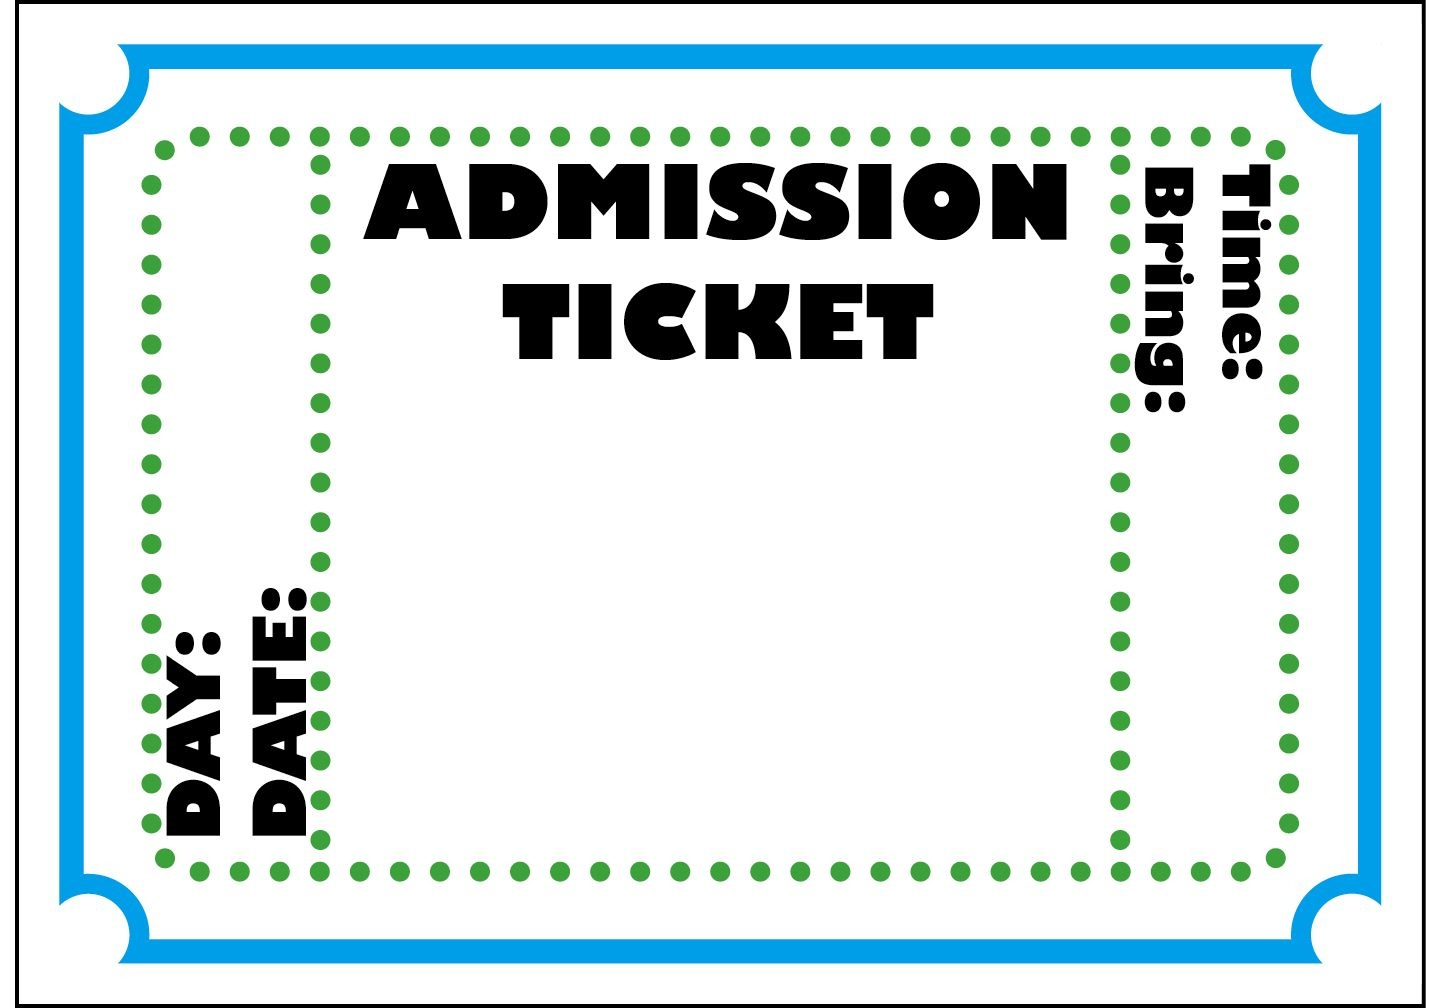 Mormon Share } Admission Ticket   Colossal Coaster World Vbs 2013 - Free Printable Admission Ticket Template